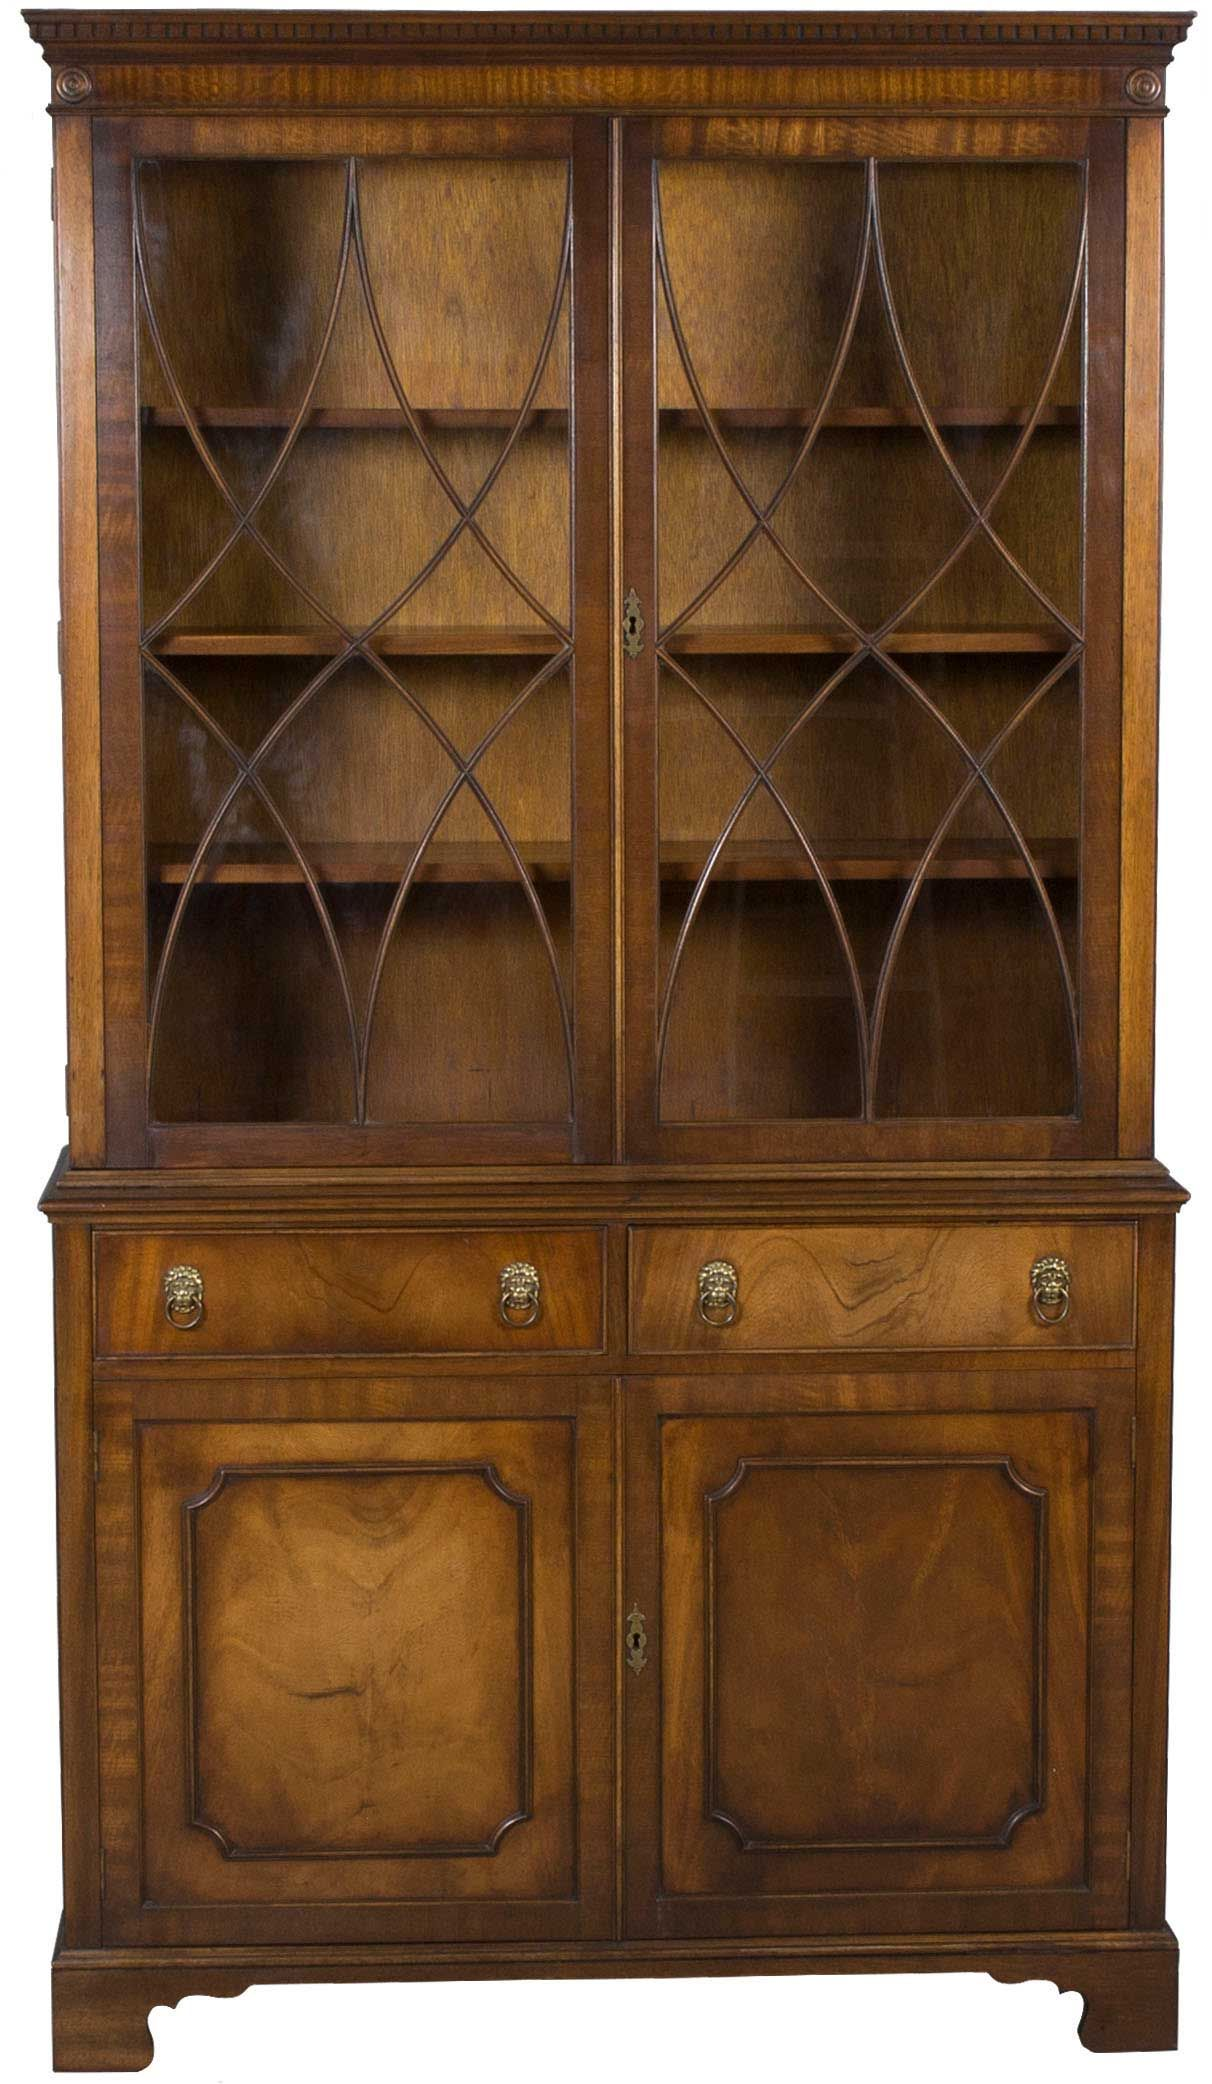 Antique Bookshelf Awesome Antiques Pinterest Antique Furniture